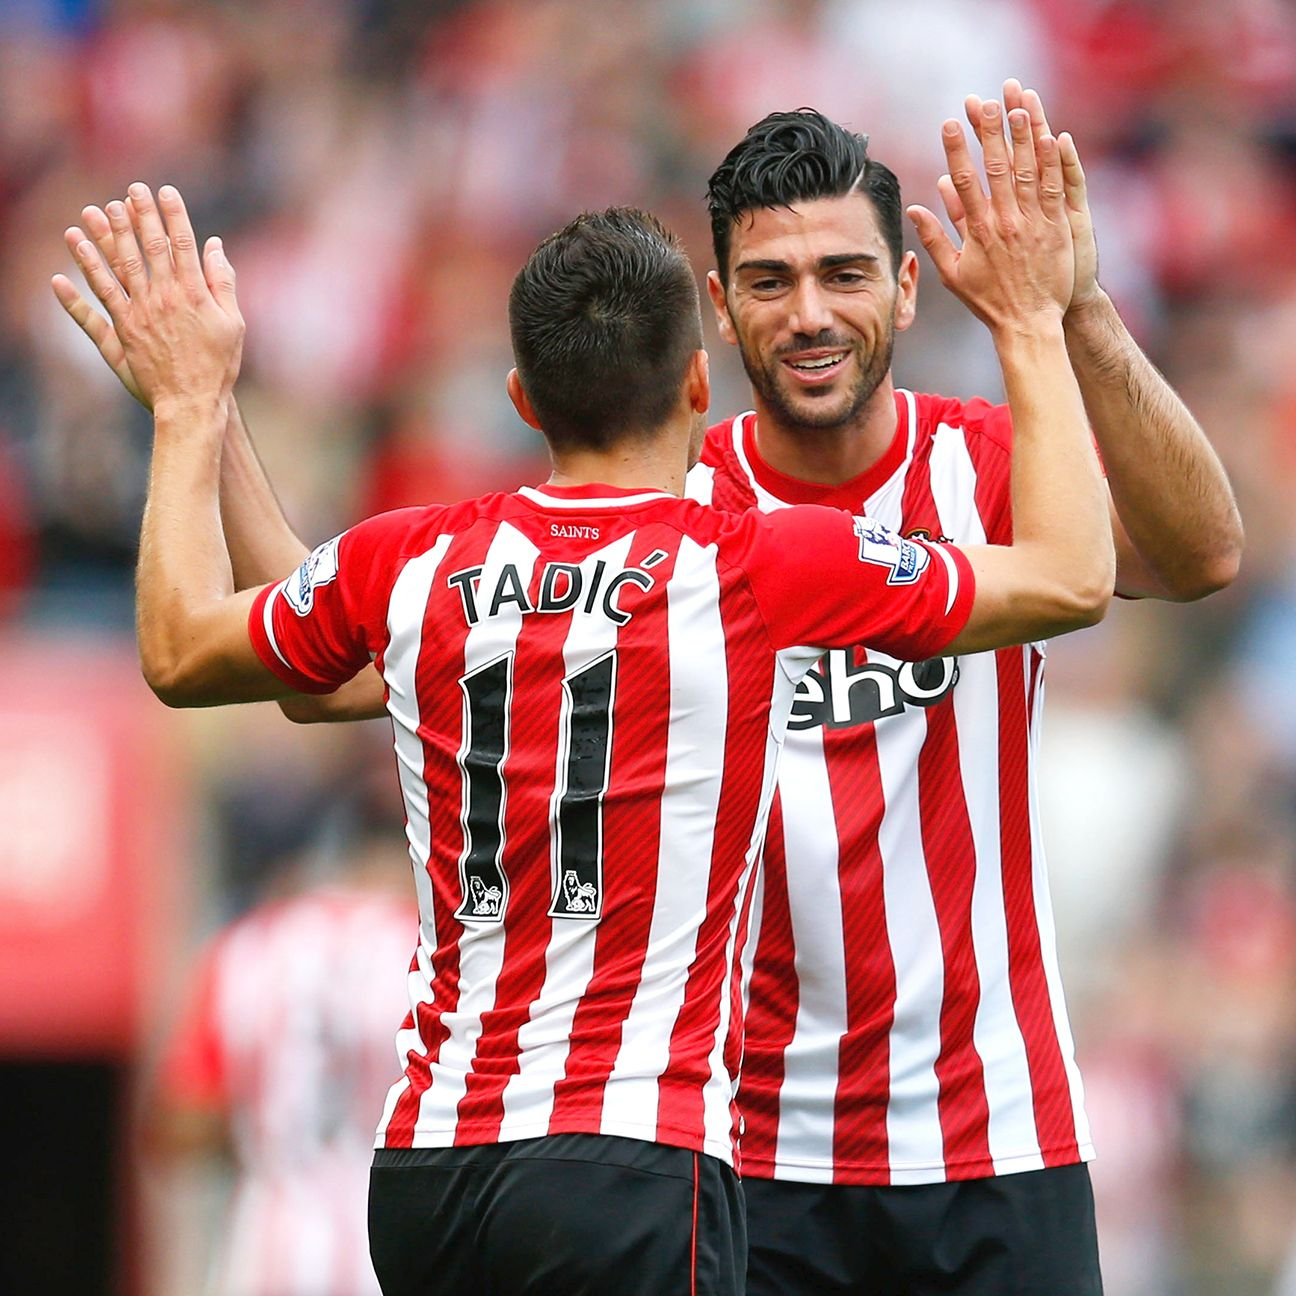 The duo of Dusan Tadic and Graziano Pelle will be tasked with getting Southampton back on track.